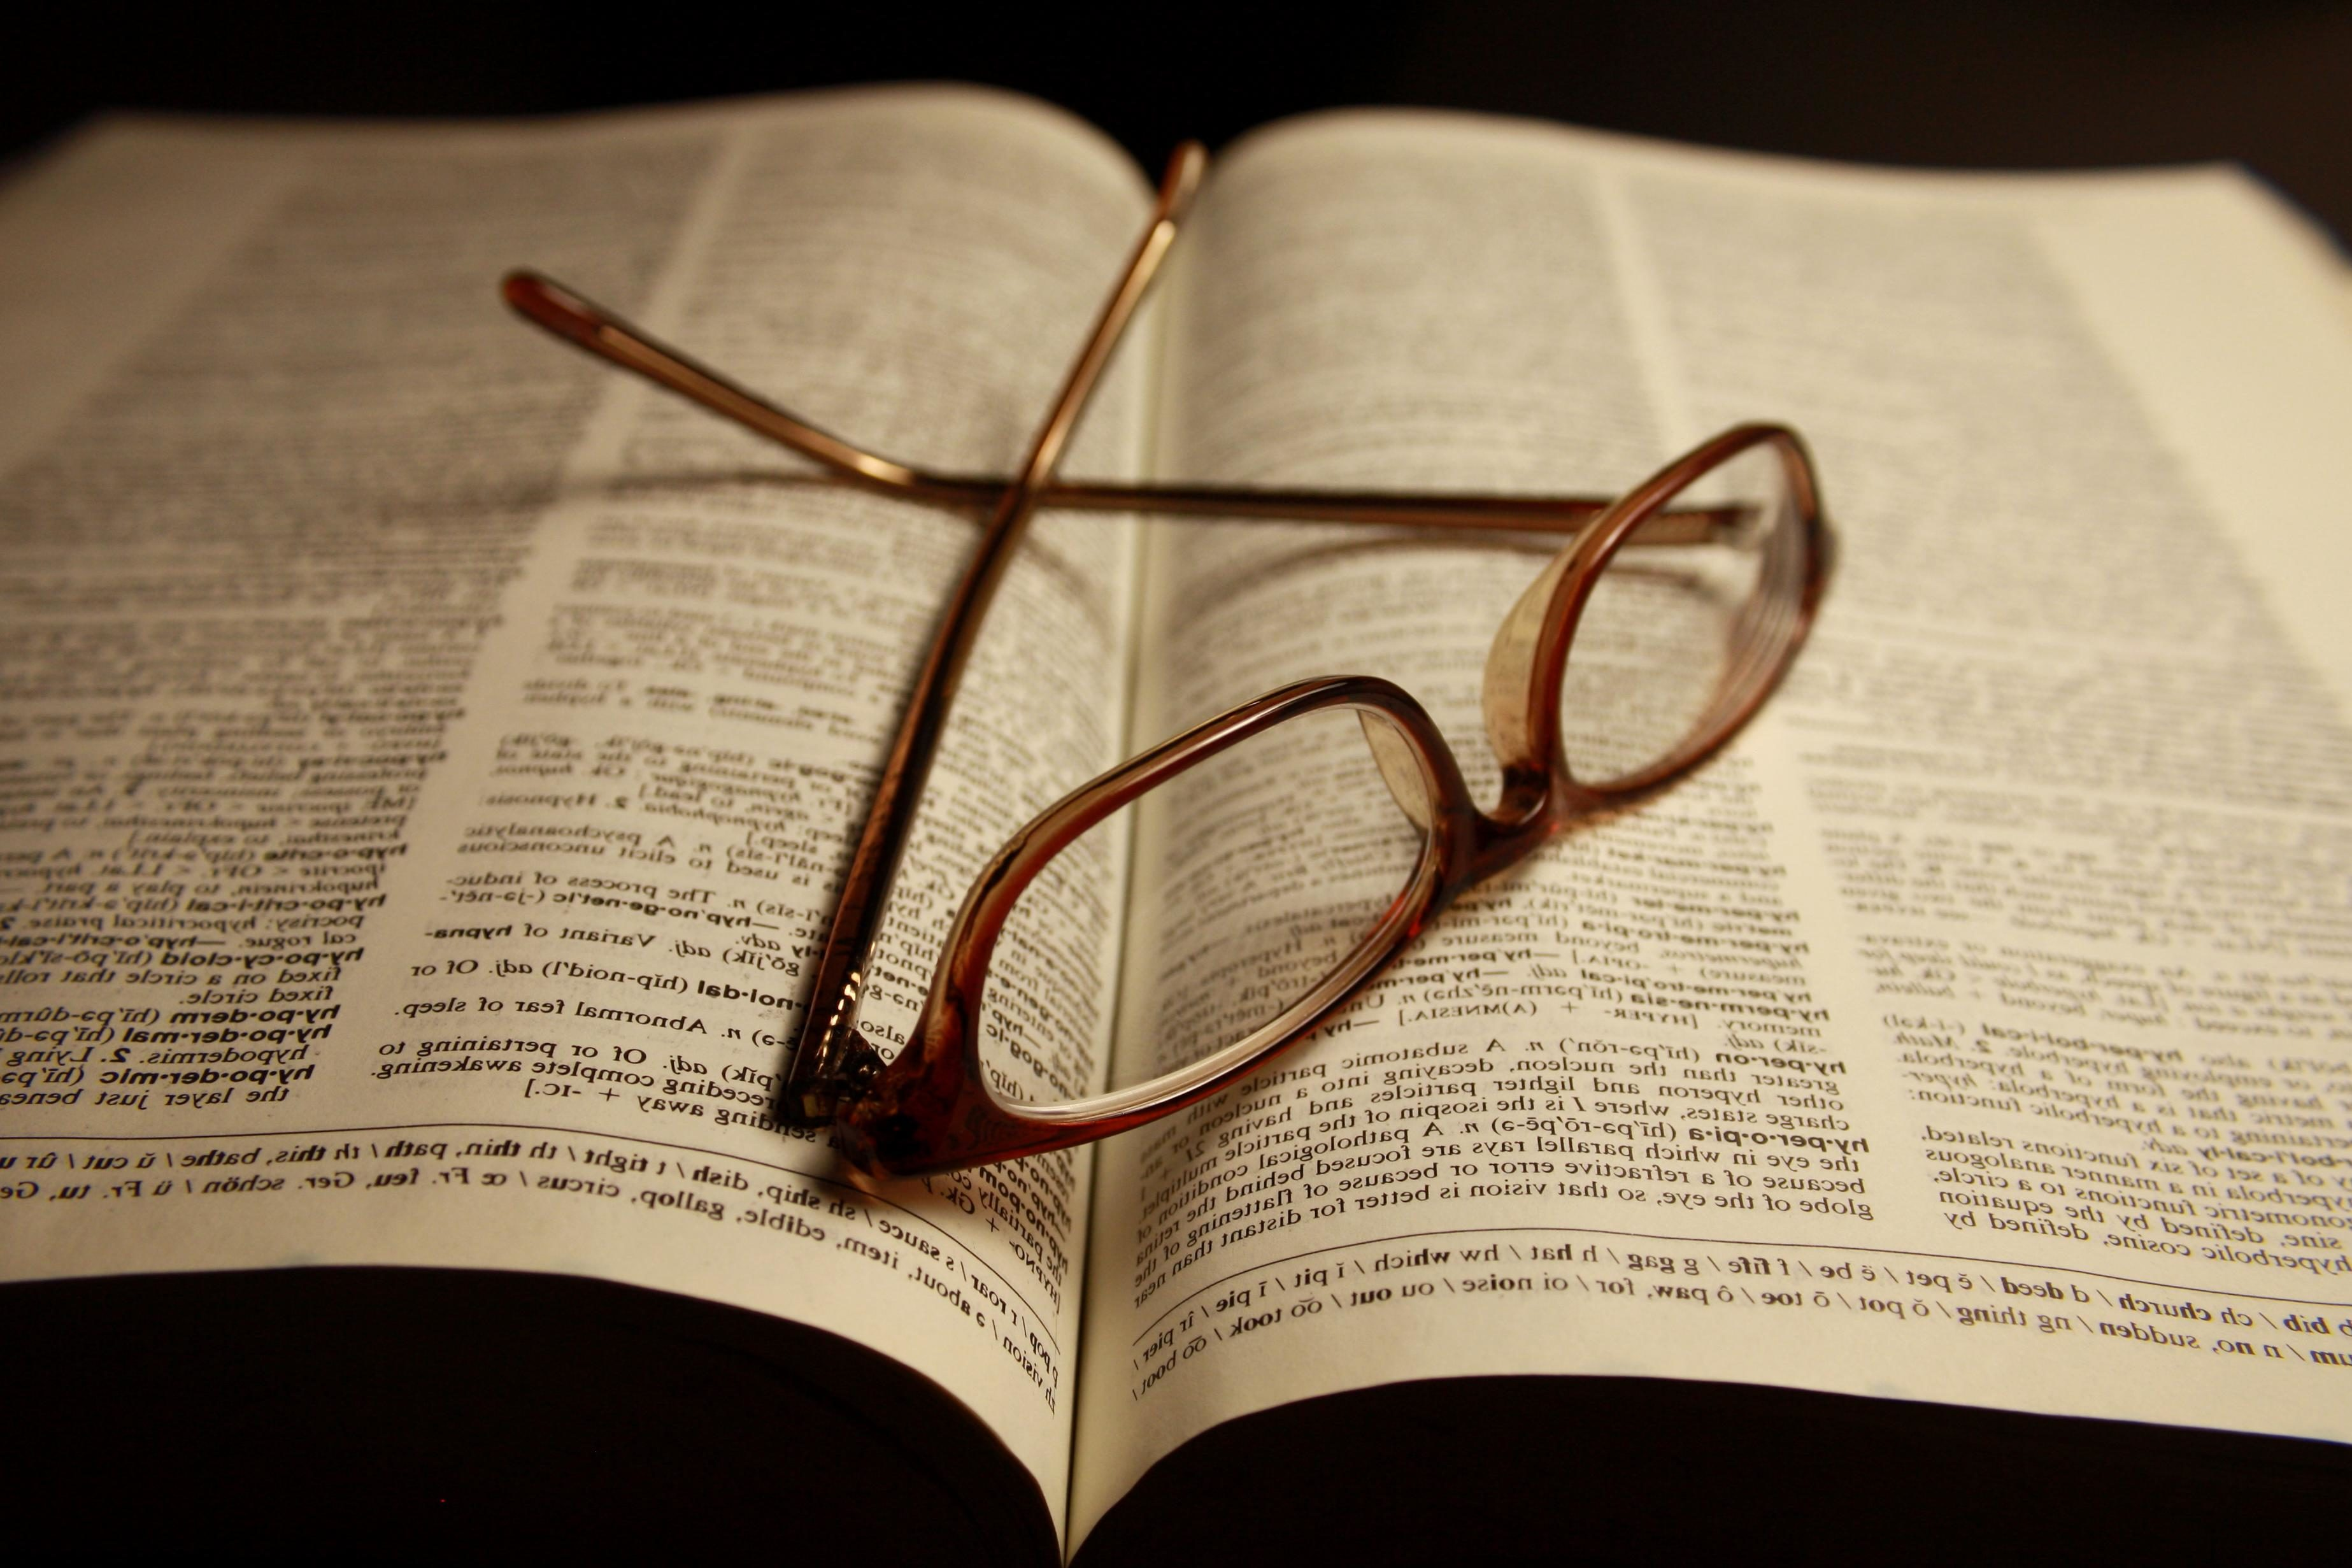 Book and glasses photo